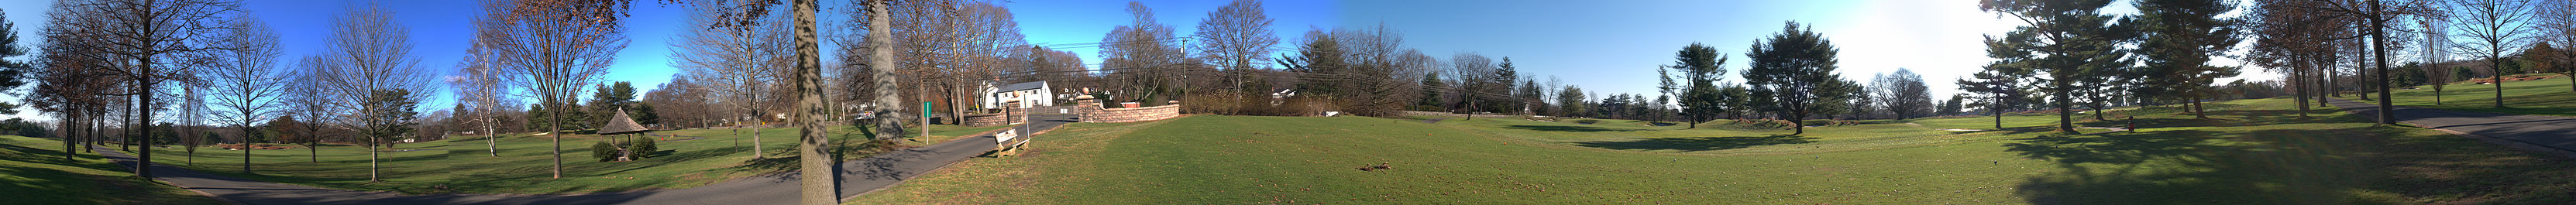 A panoramic view looking over Longshore Club Park, Westport, CT.